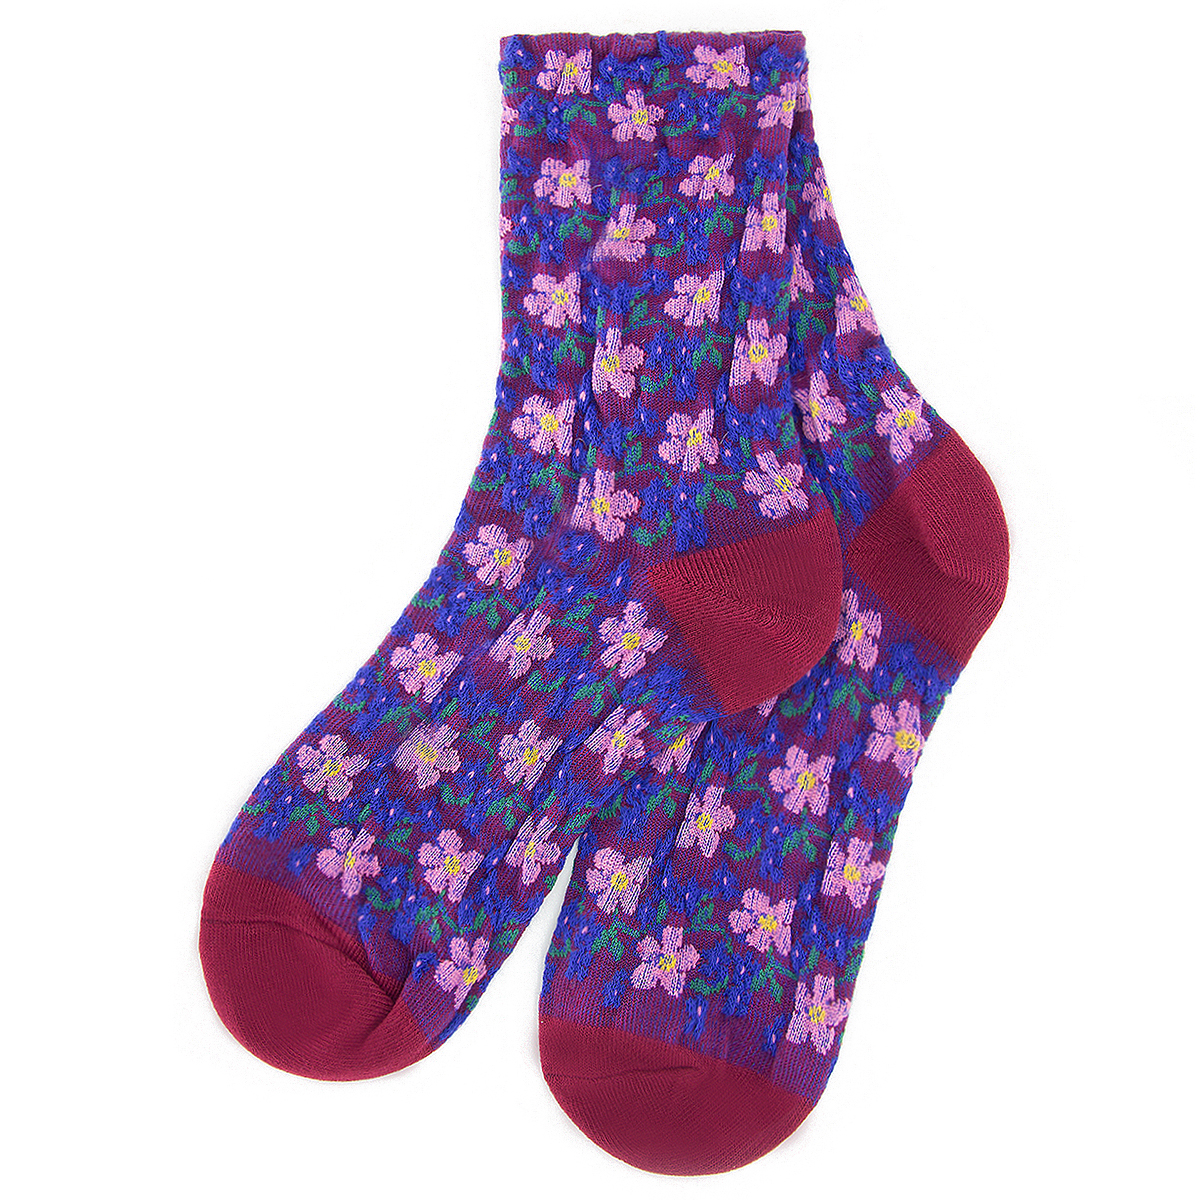 Purple and pink flower socks by Emin and Paul